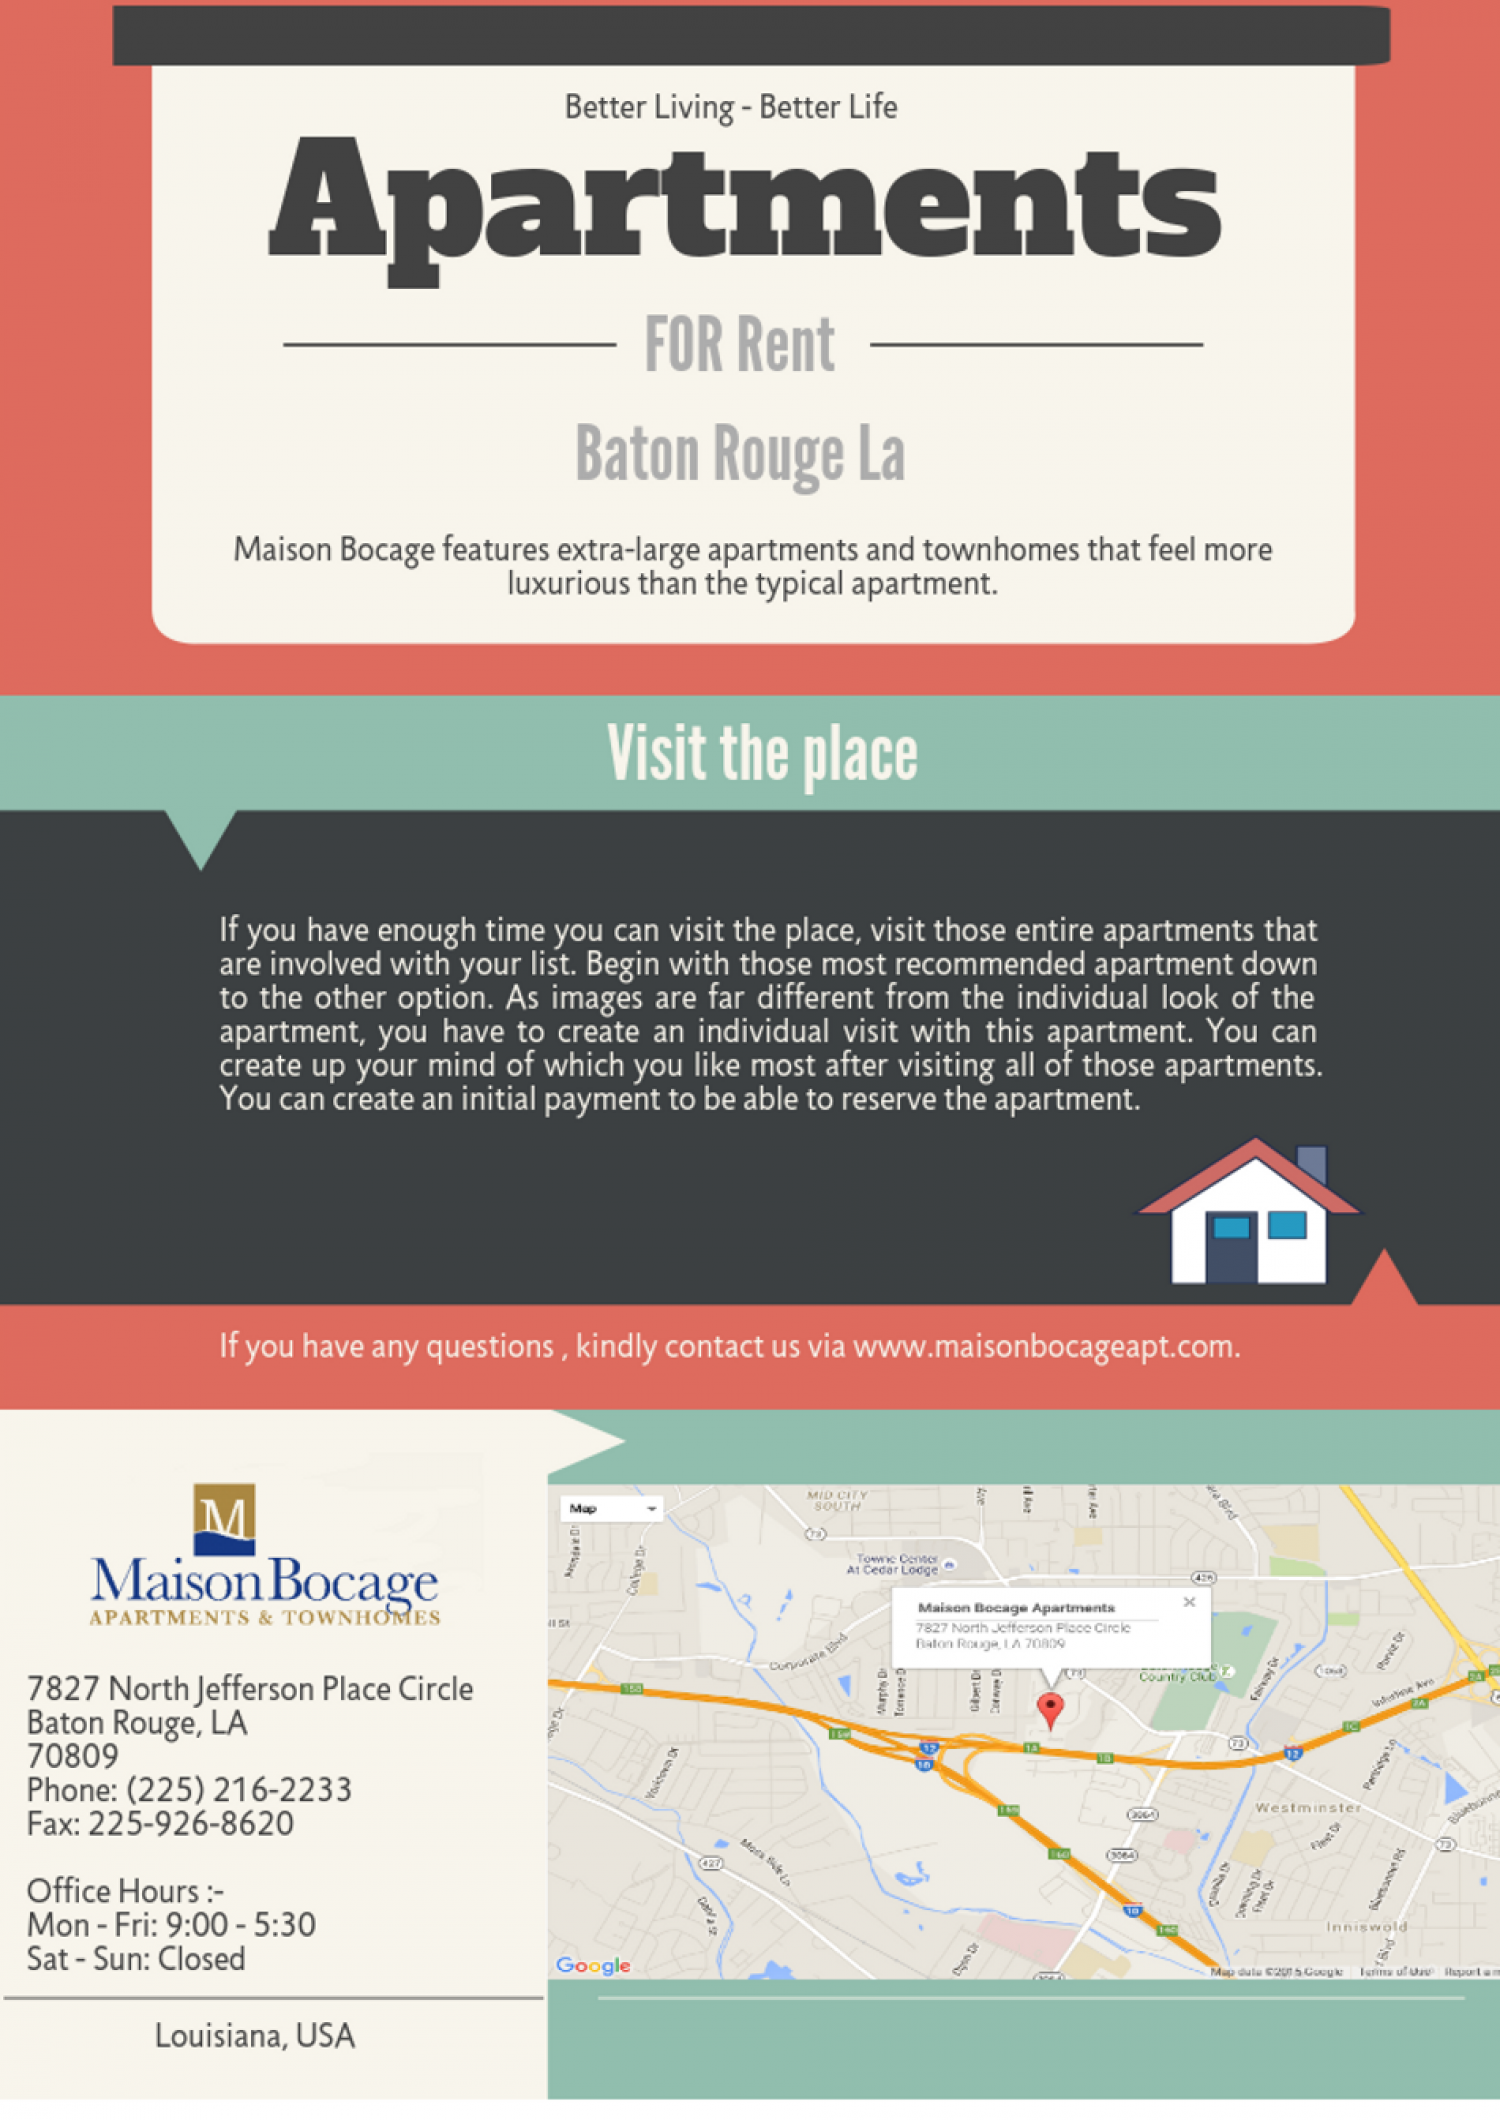 Best Apartments for Rent in Baton Rouge LA